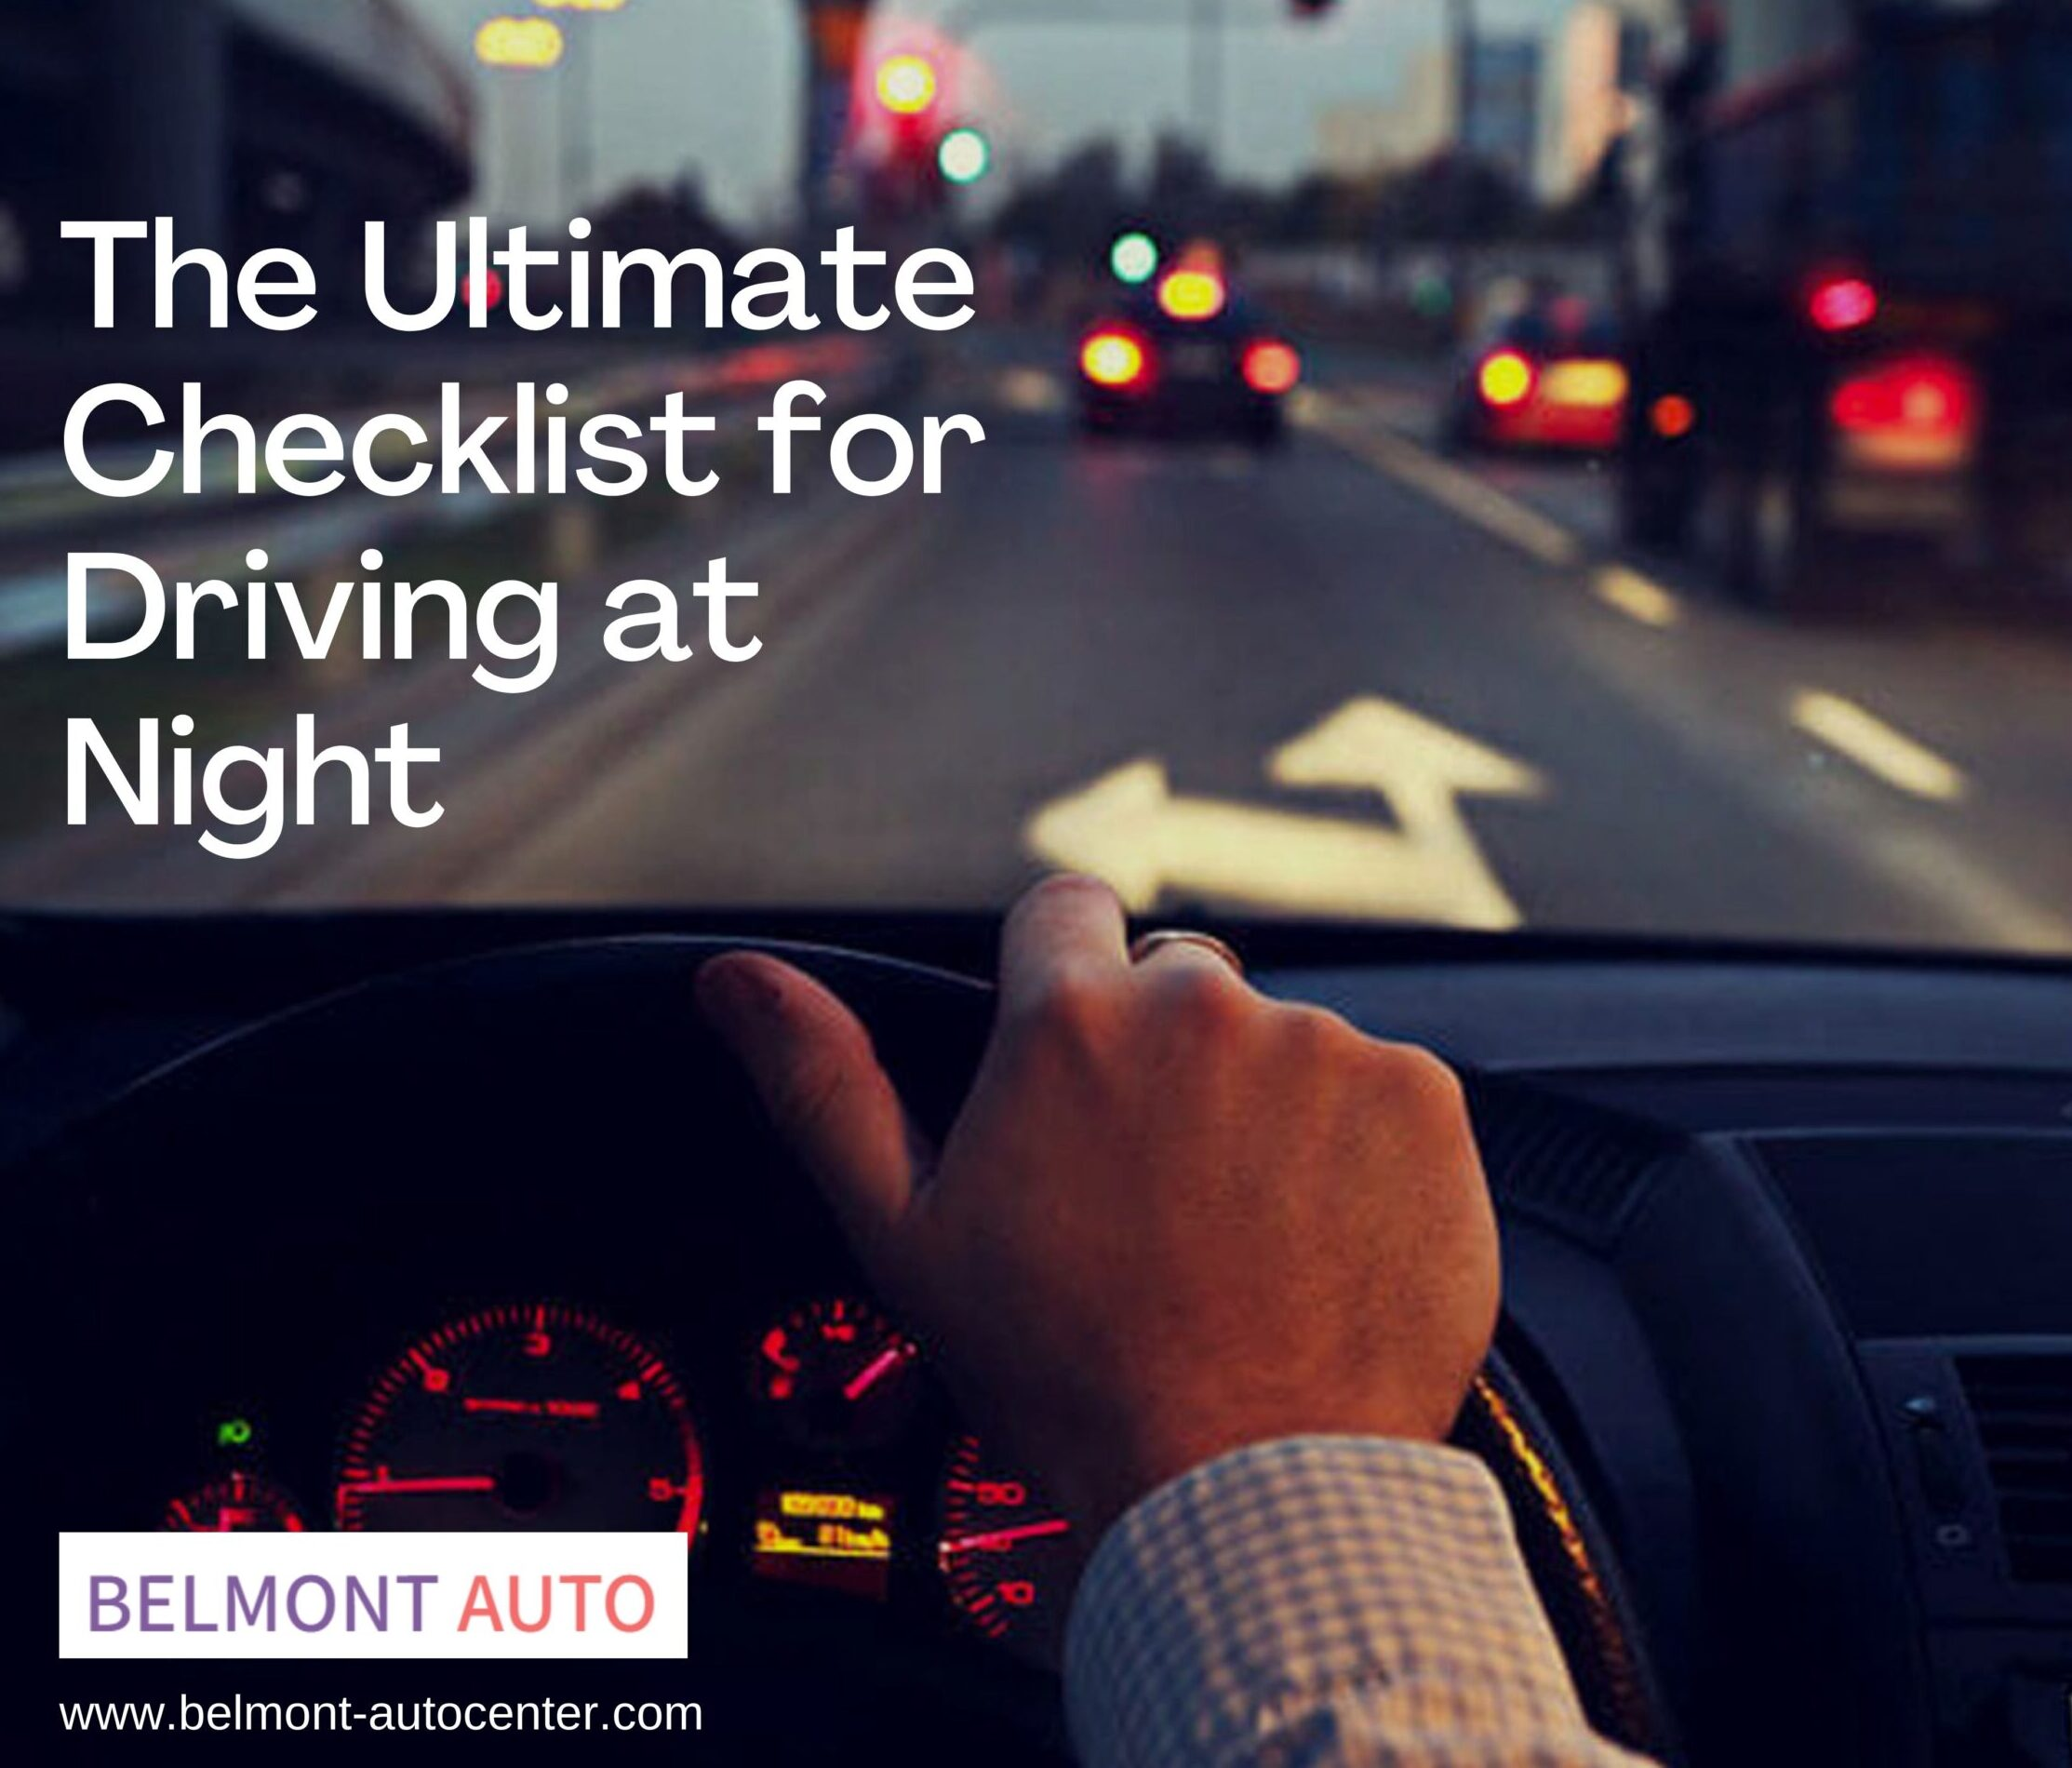 Checklist for Driving at Night